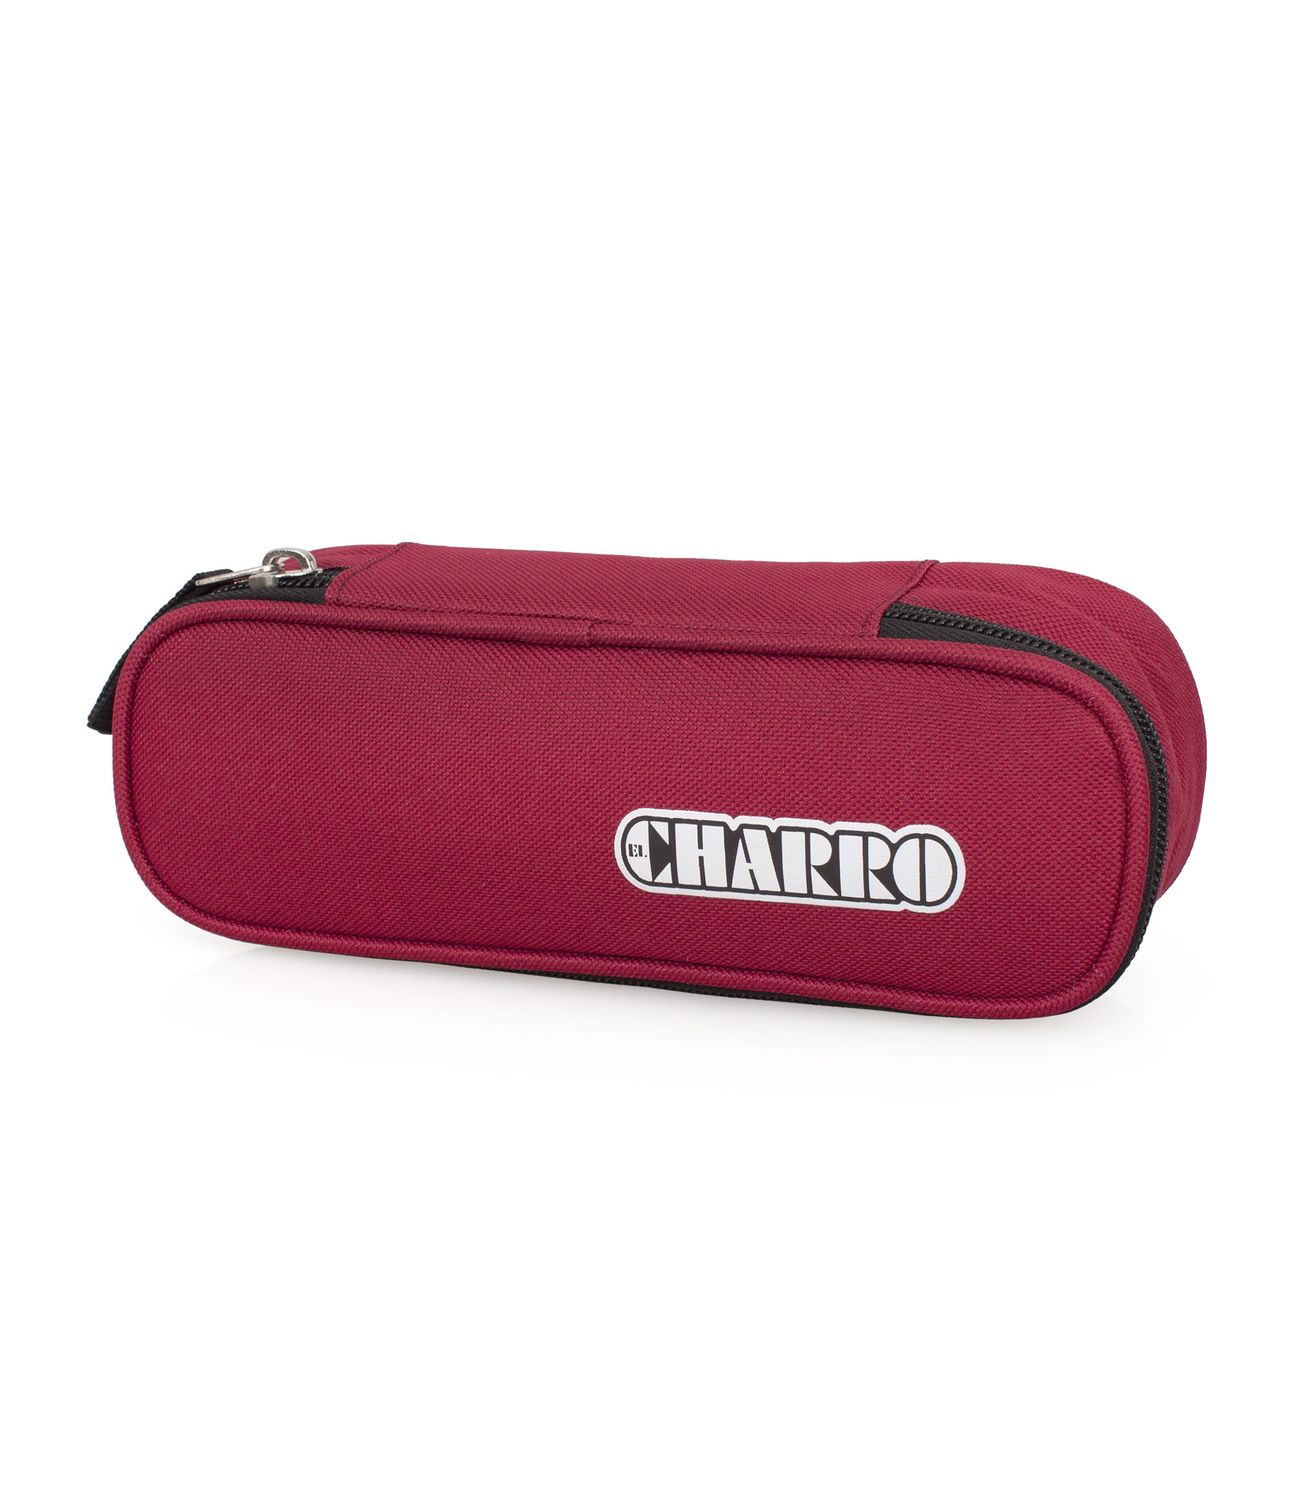 EL CHARRO BASIC Oval Pencil Case BORDEAUX